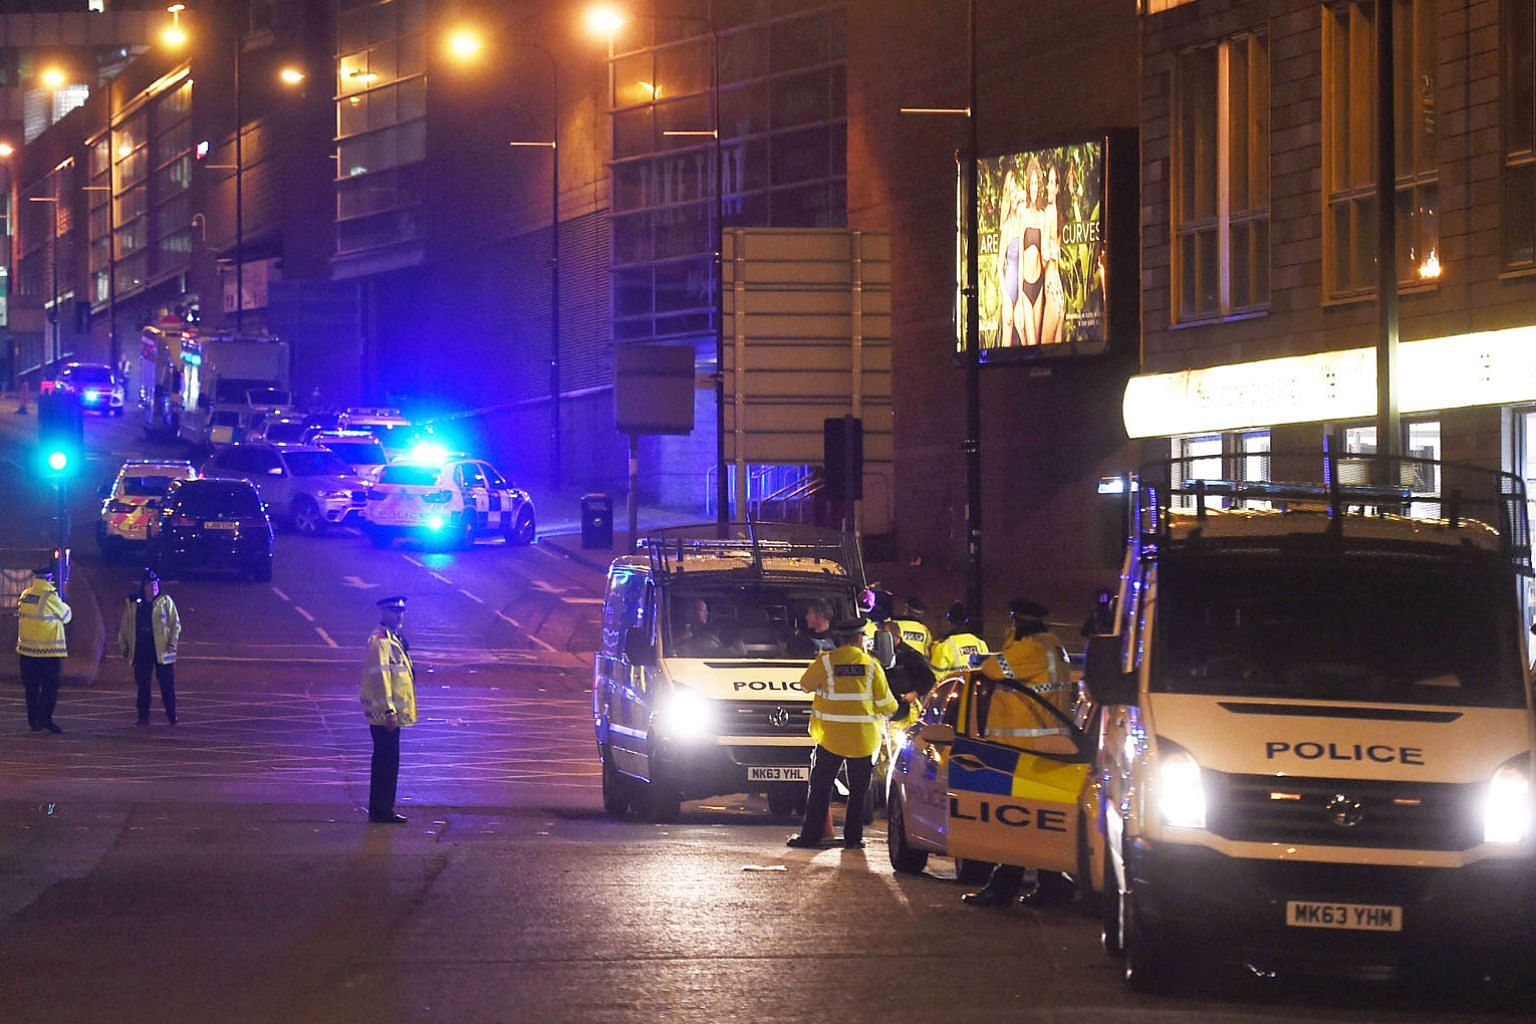 Police at the scene of the recent bombing in Manchester, England. The Singapore Government has constantly stressed the heightened threat levels here as the Republic is a high-value target.